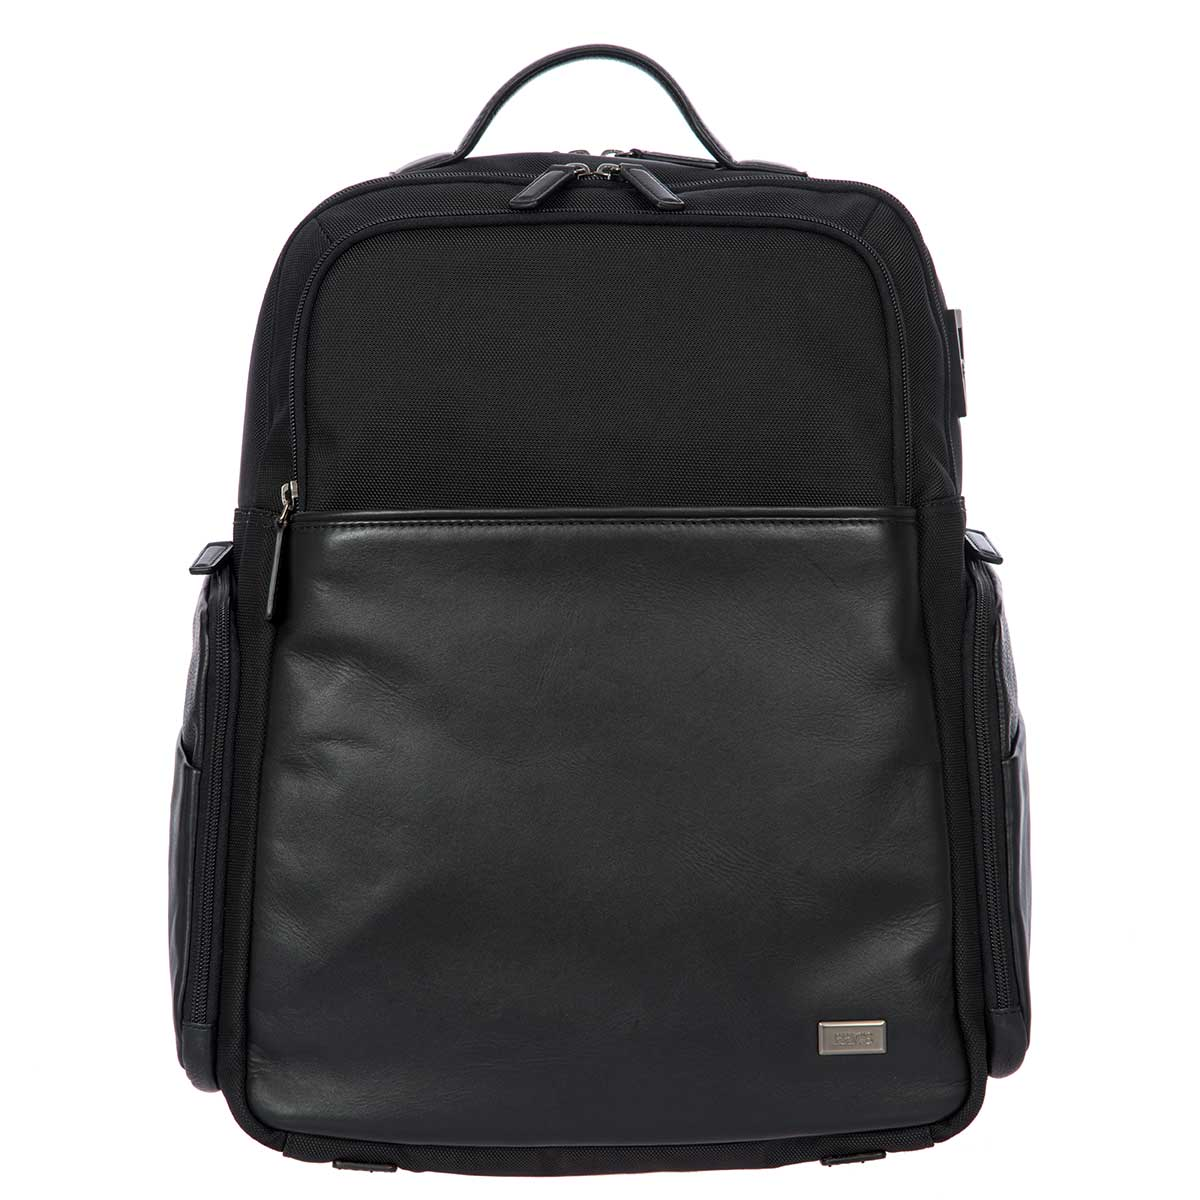 Monza Backpack Business L by Brics (Color: Black/Black)